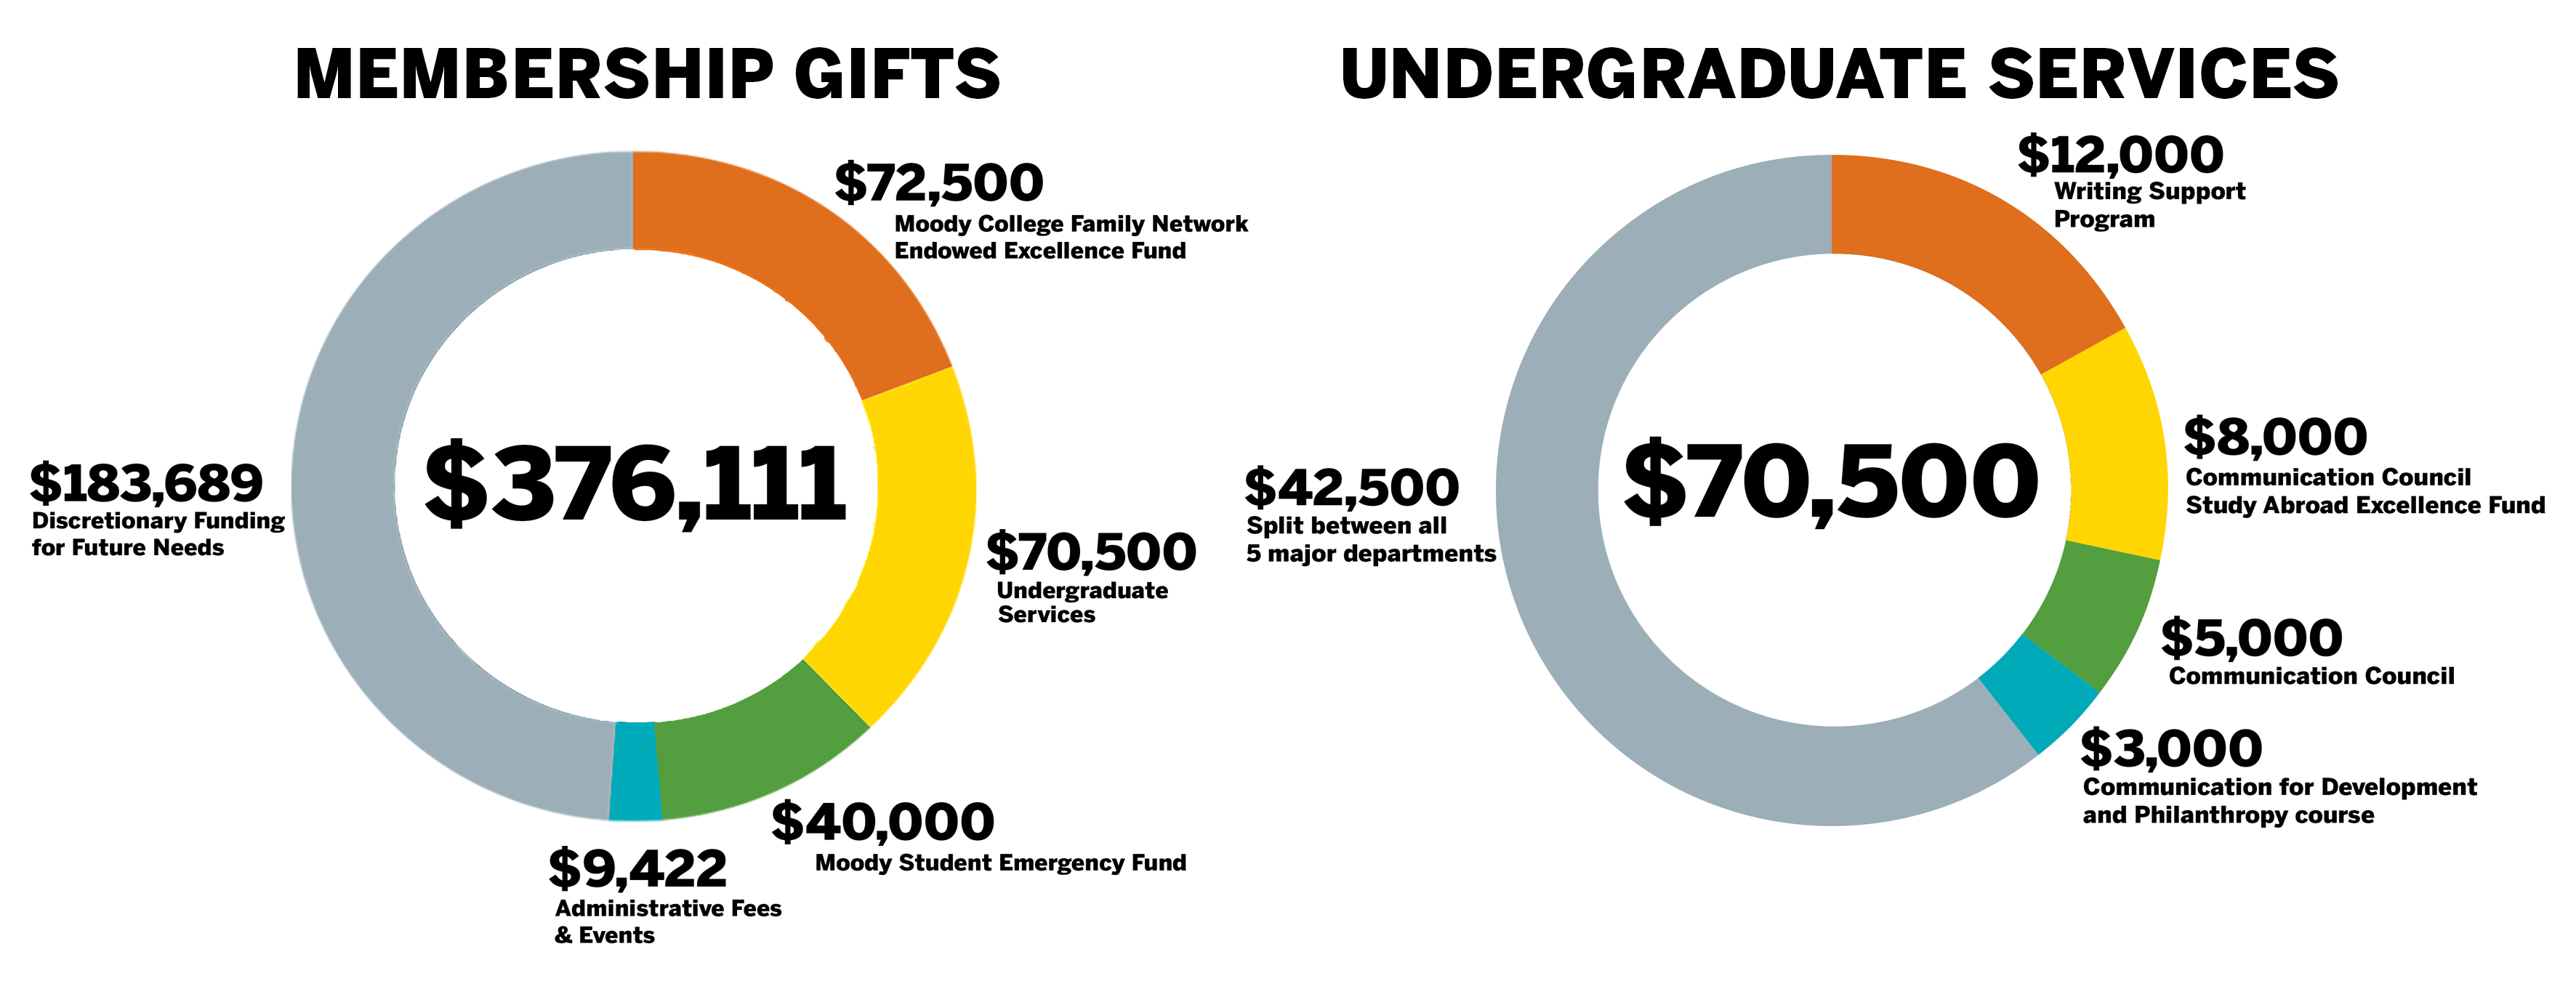 Your Impact: Distribution of Membership Gifts and Family Network funding to Undergraduate Services